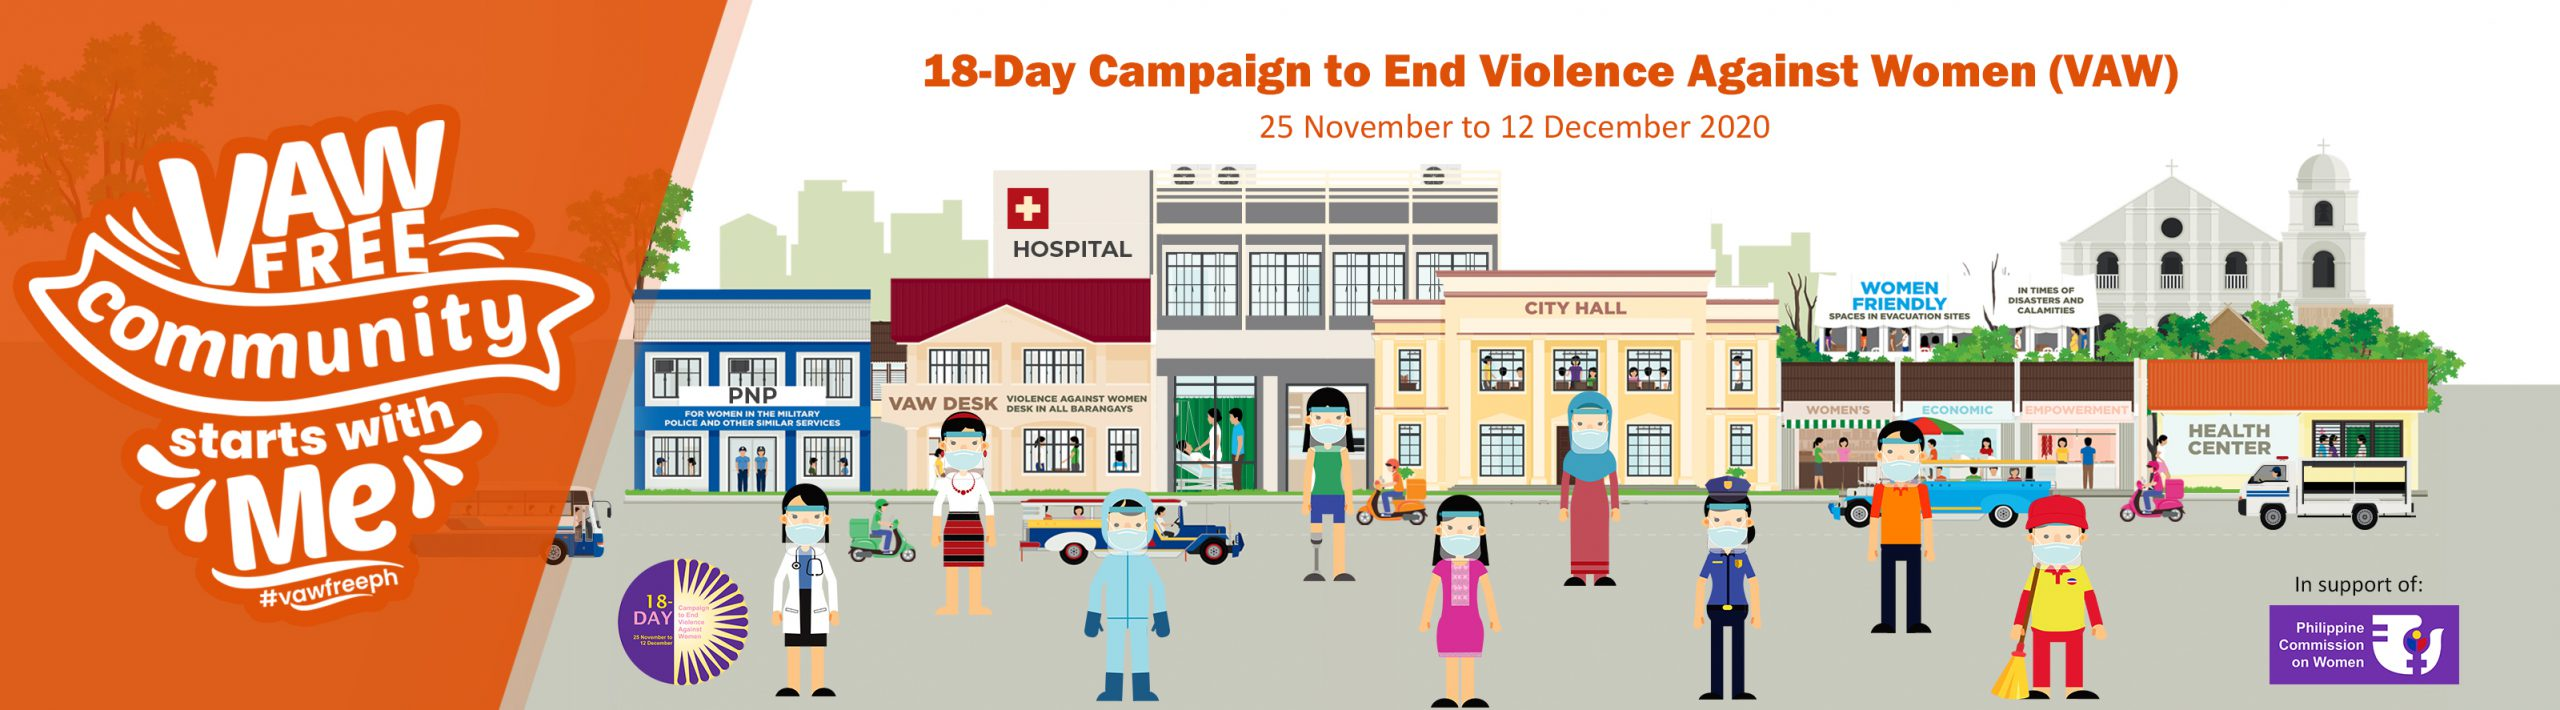 VAW Free Community Starts with Me